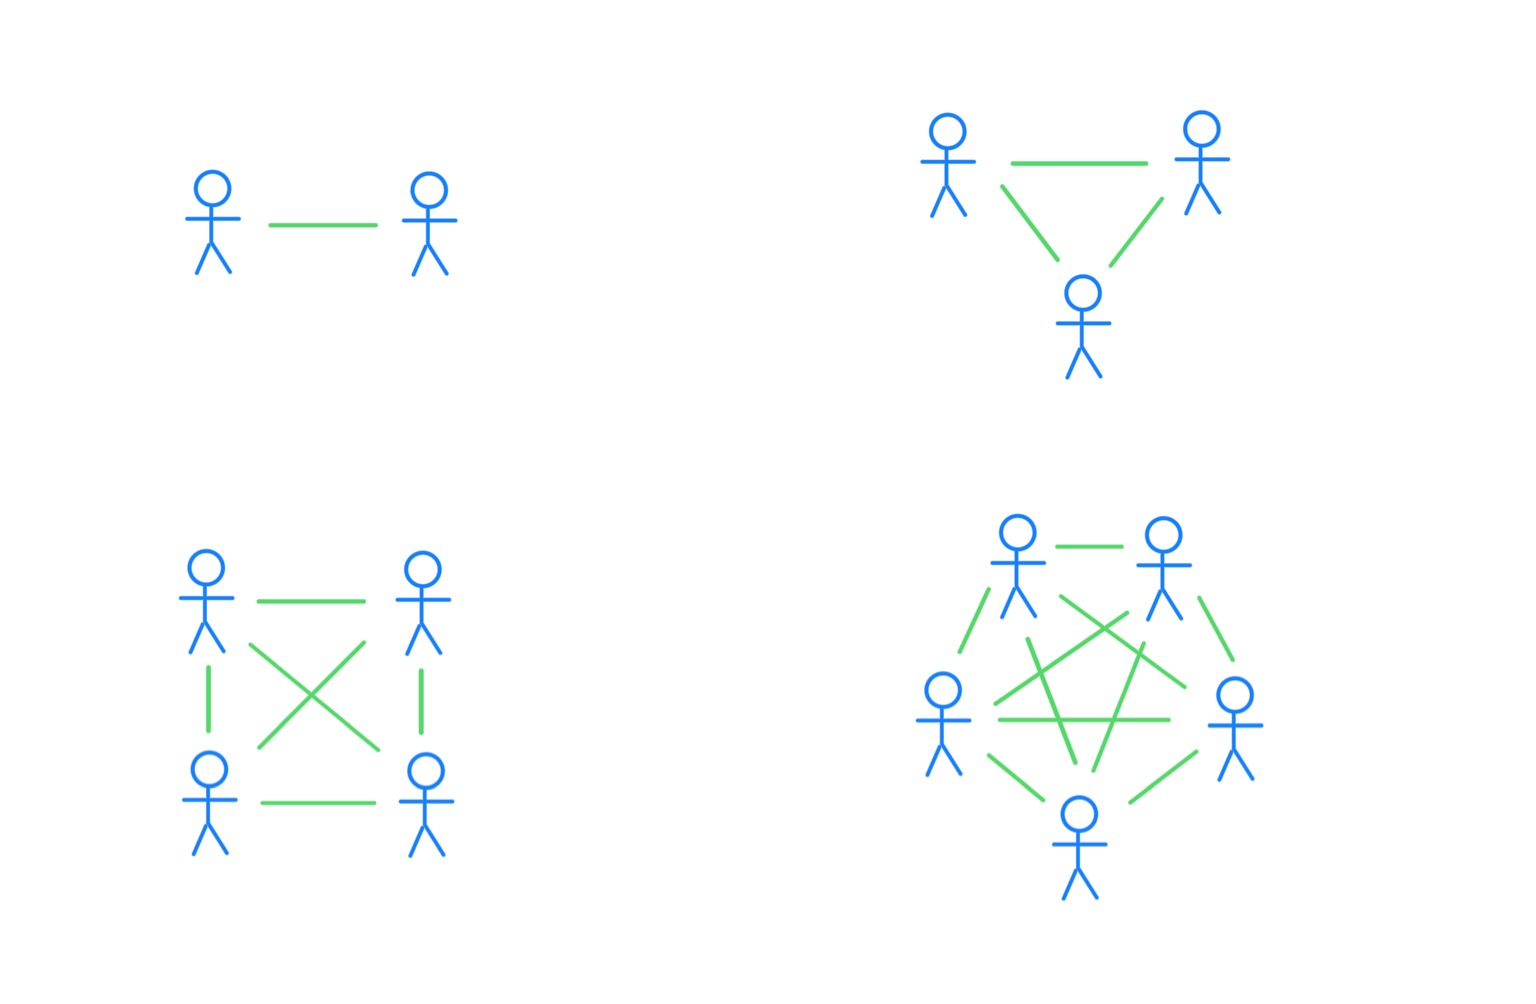 Four graphs showing how to represent group and communication paths as nodes and edges